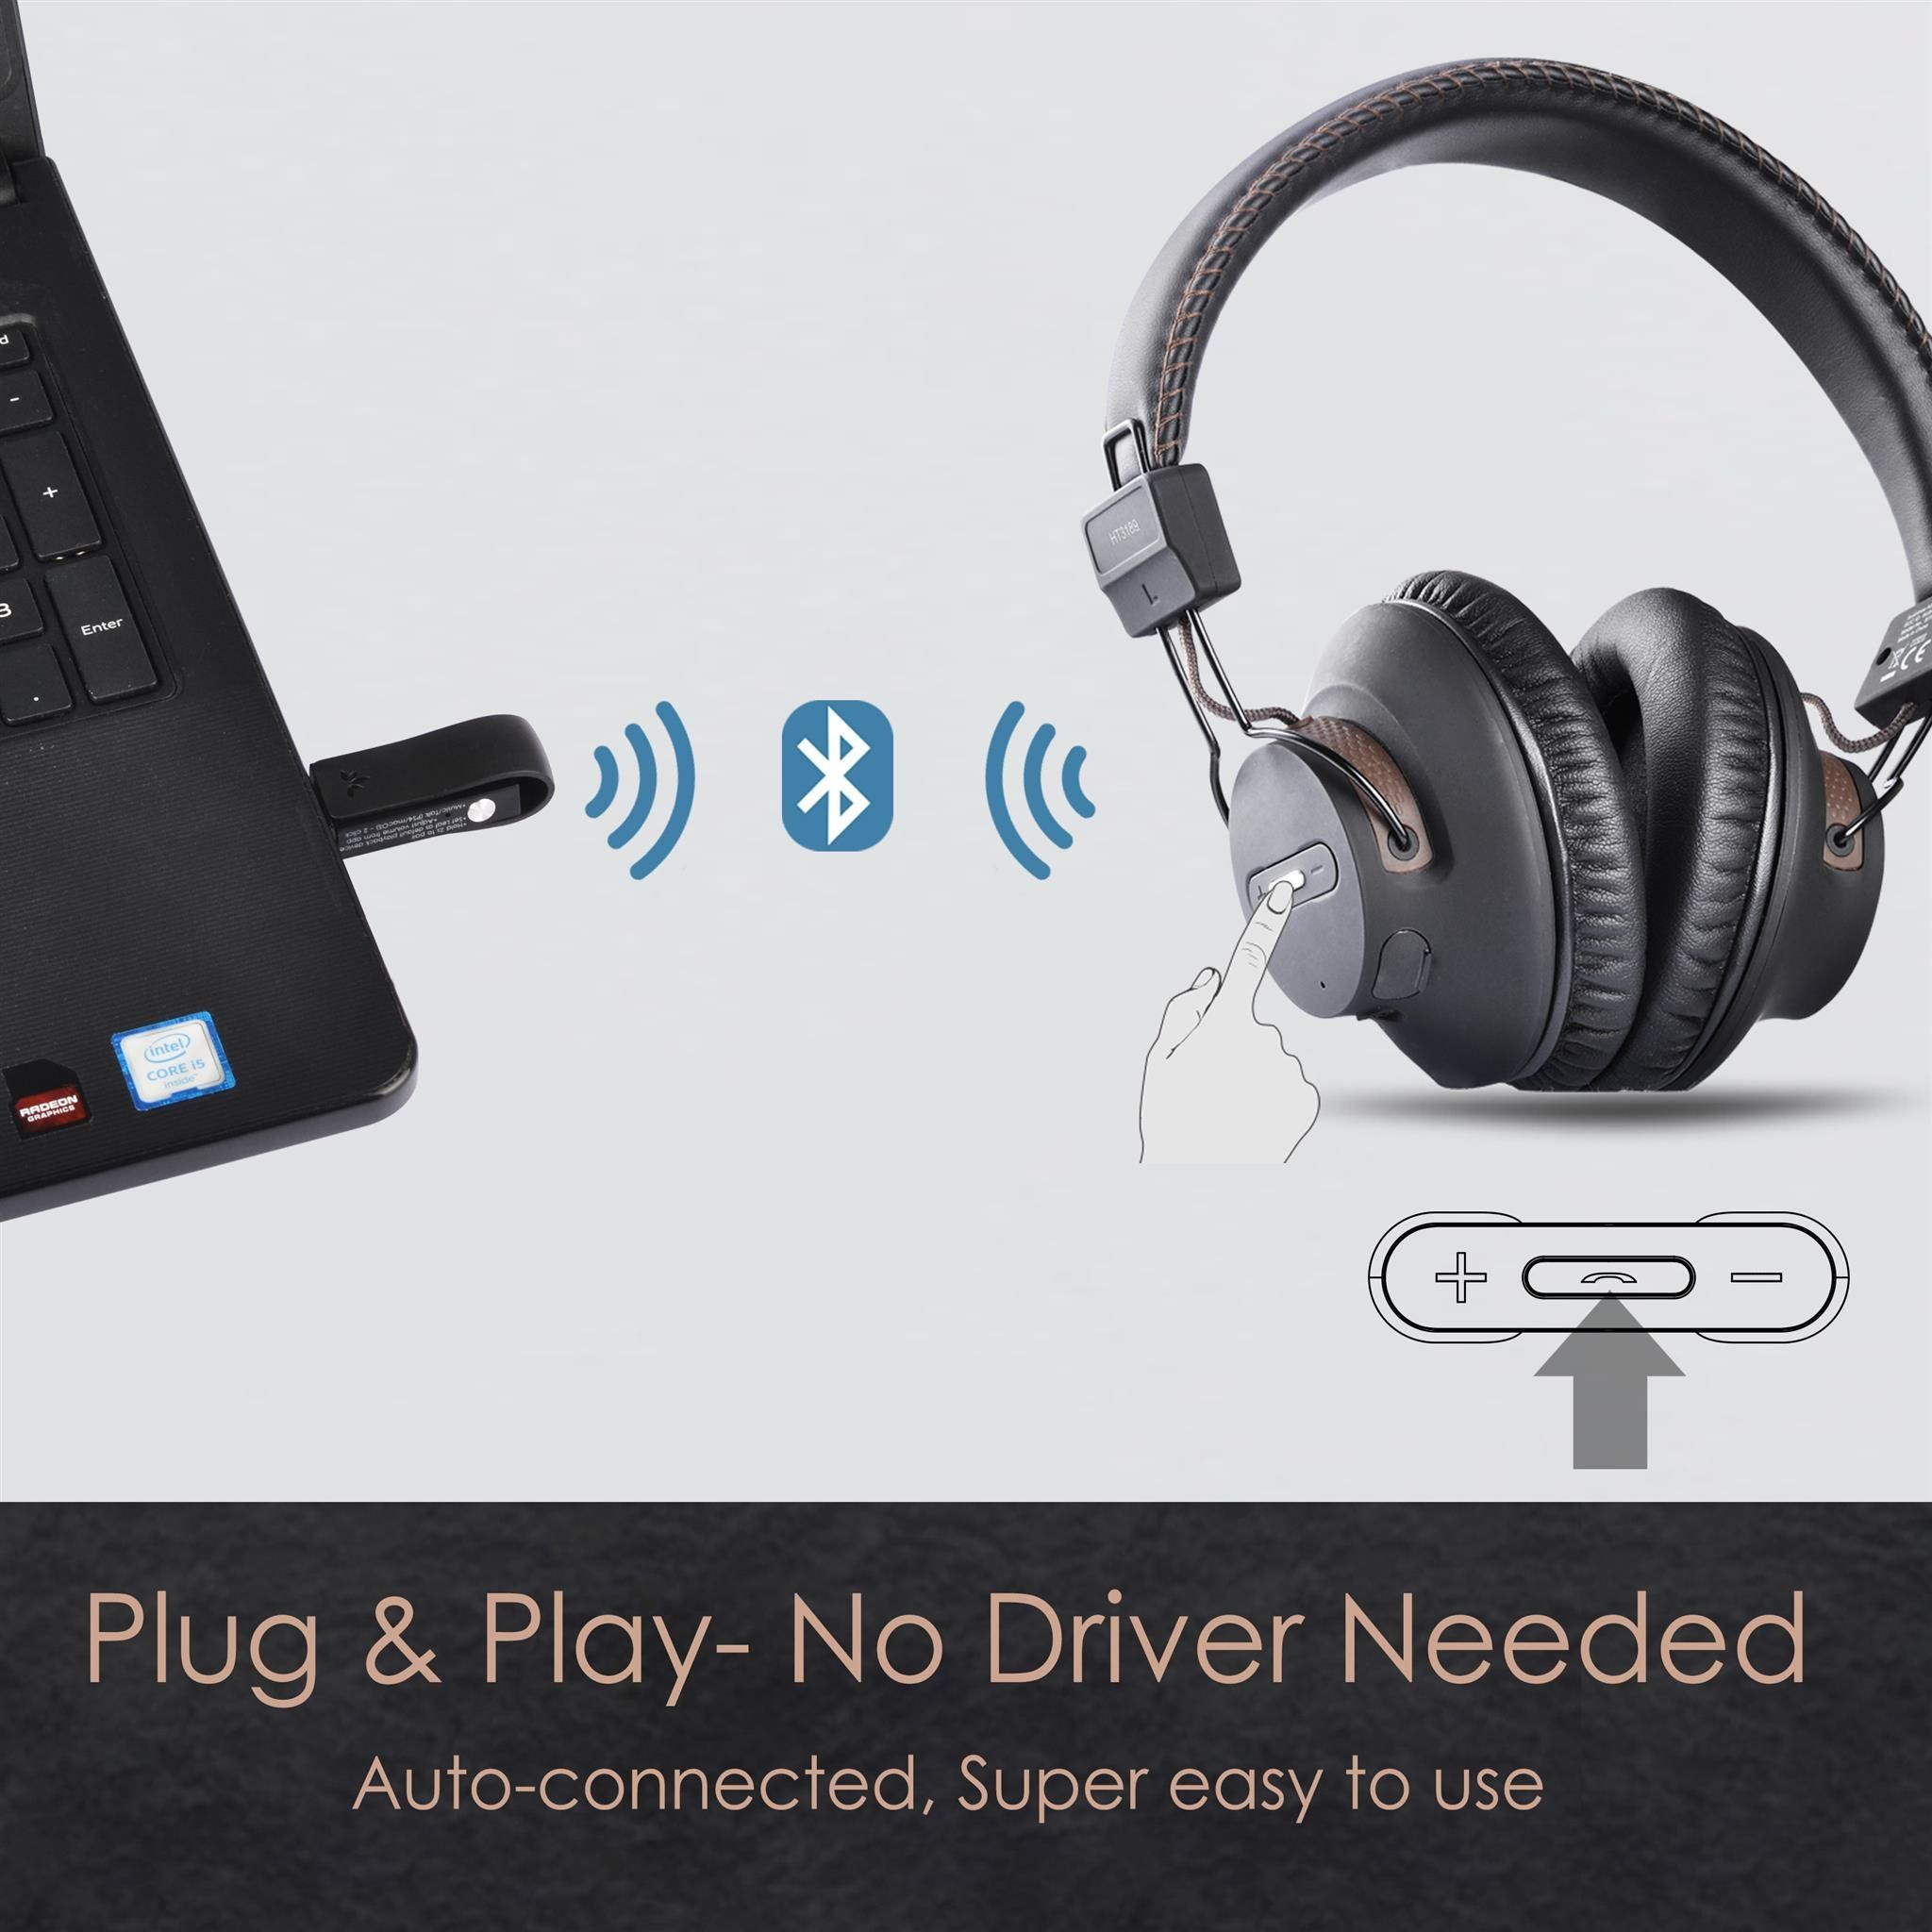 Avantree Dg59 Wireless Ps4 Gaming Headphones With Bluetooth Usb Audio Transmitter Set For Pc Nintendo Switch Des Gaming Headphones Headphones Desktop Computers